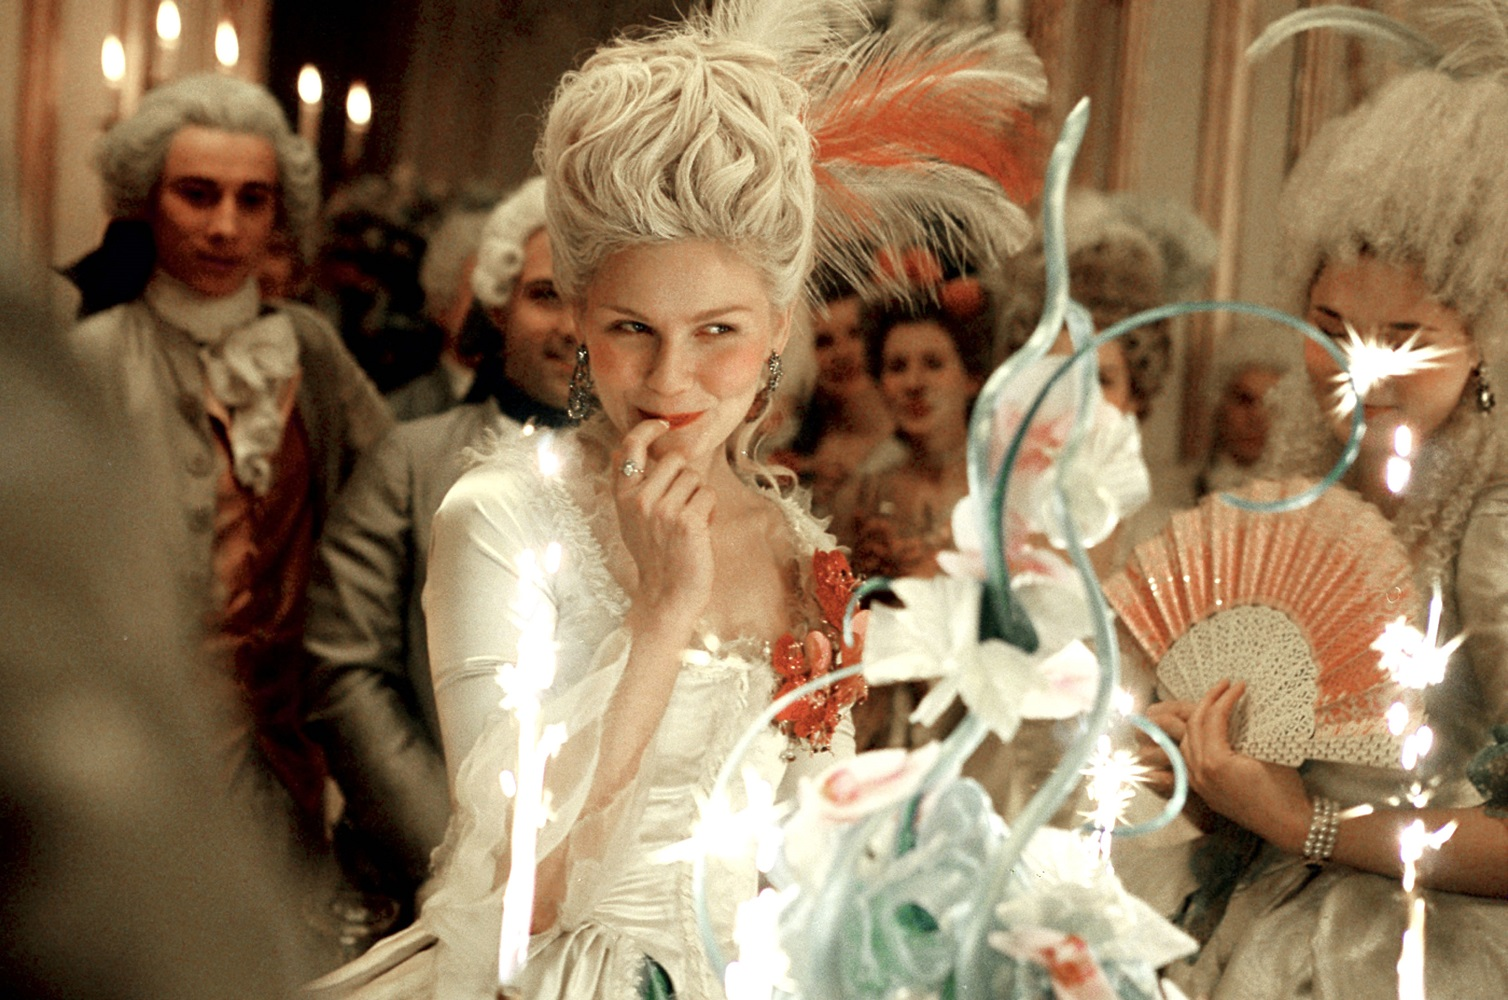 MARIE ANTOINETTE, Kirsten Dunst, 2006. ©Sony Pictures/courtesy Everett Collection